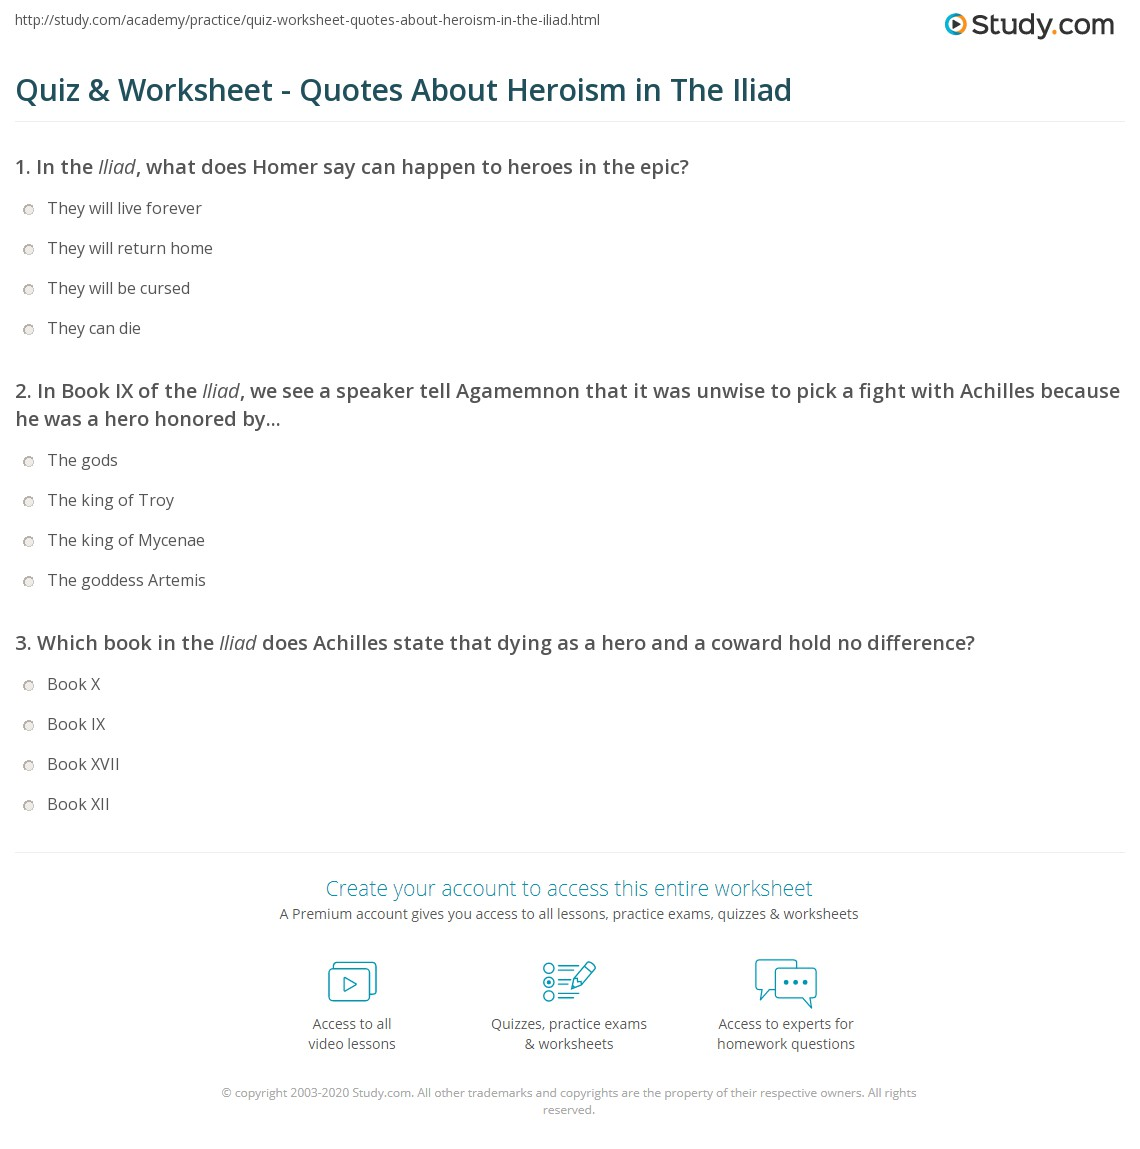 Quiz Worksheet Quotes About Heroism In The Iliad Studycom